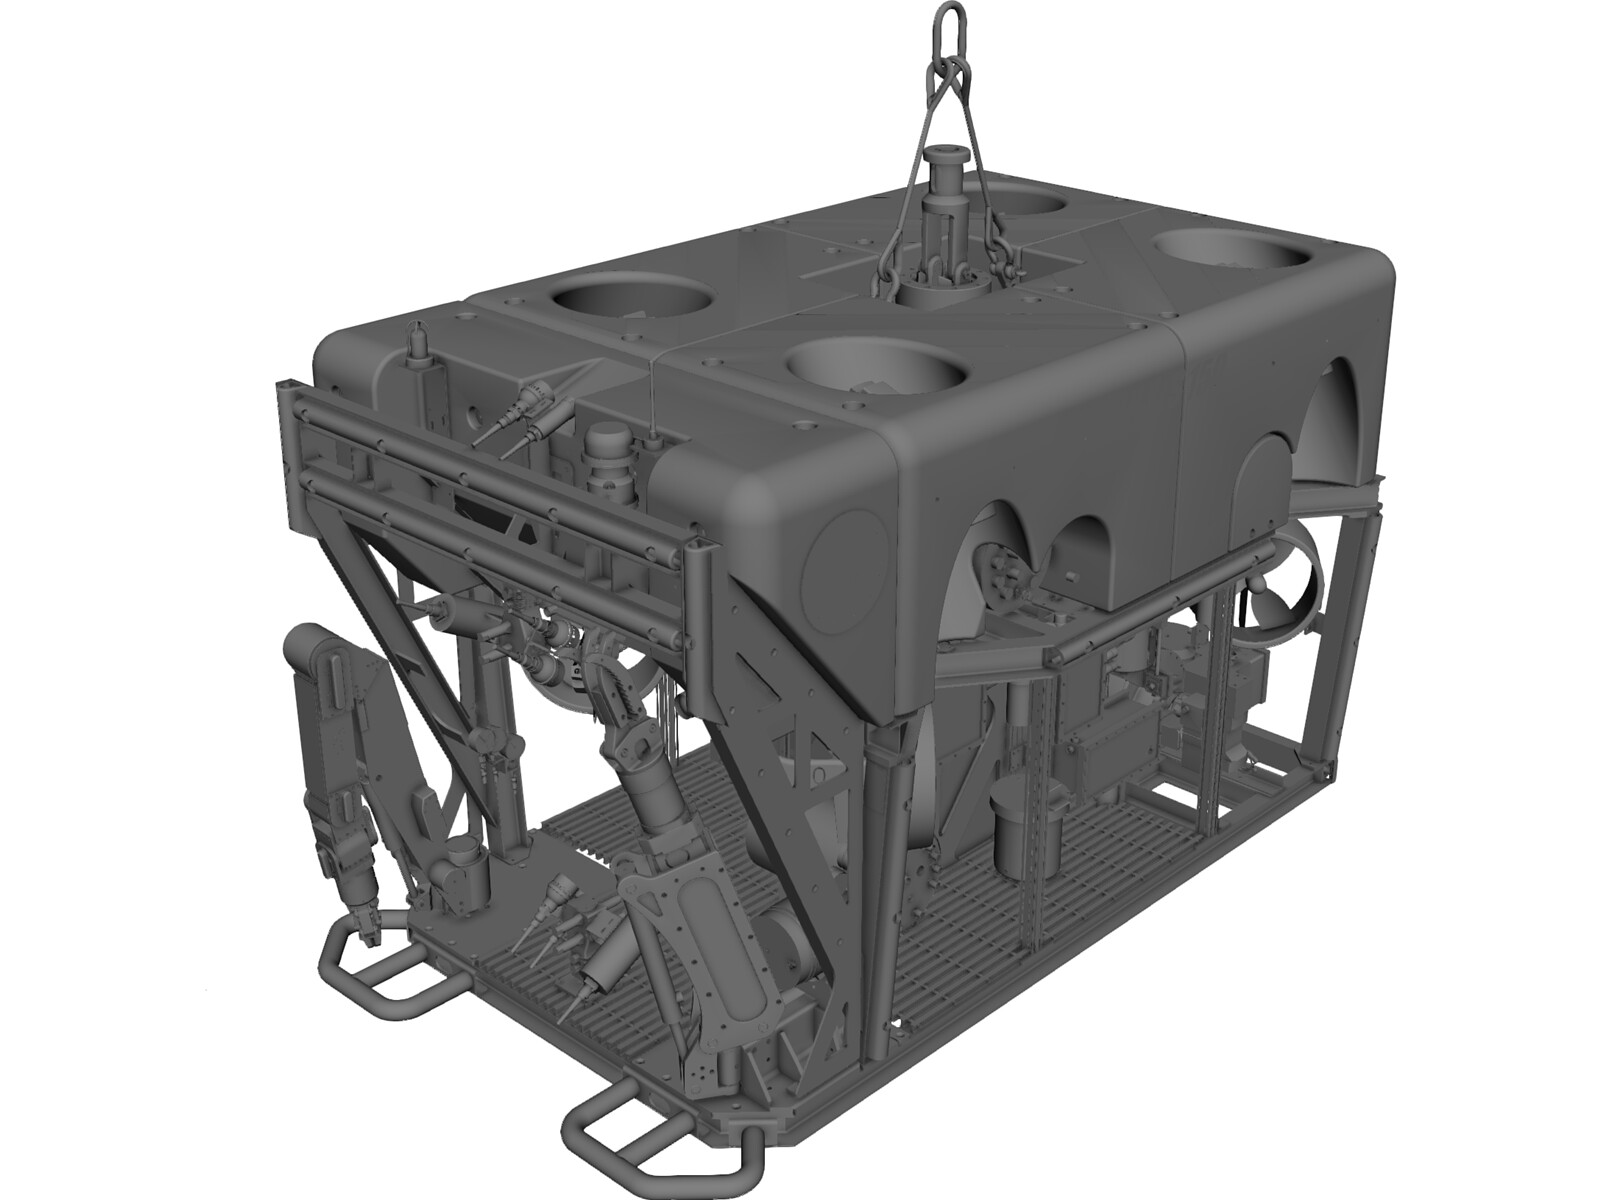 Triton XLS150 ROV 3D CAD Model